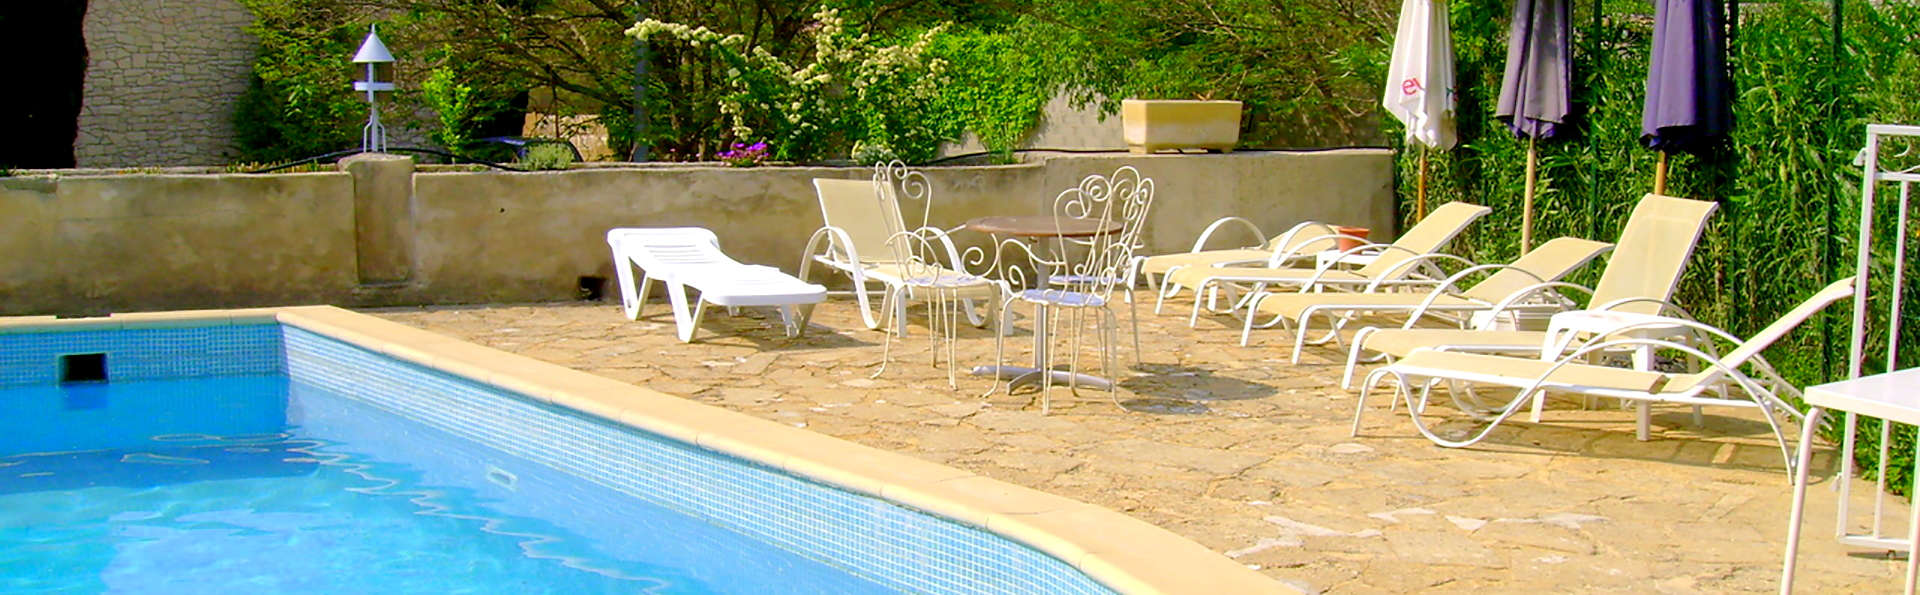 Auberge de Tavel - Edit_Pool.jpg